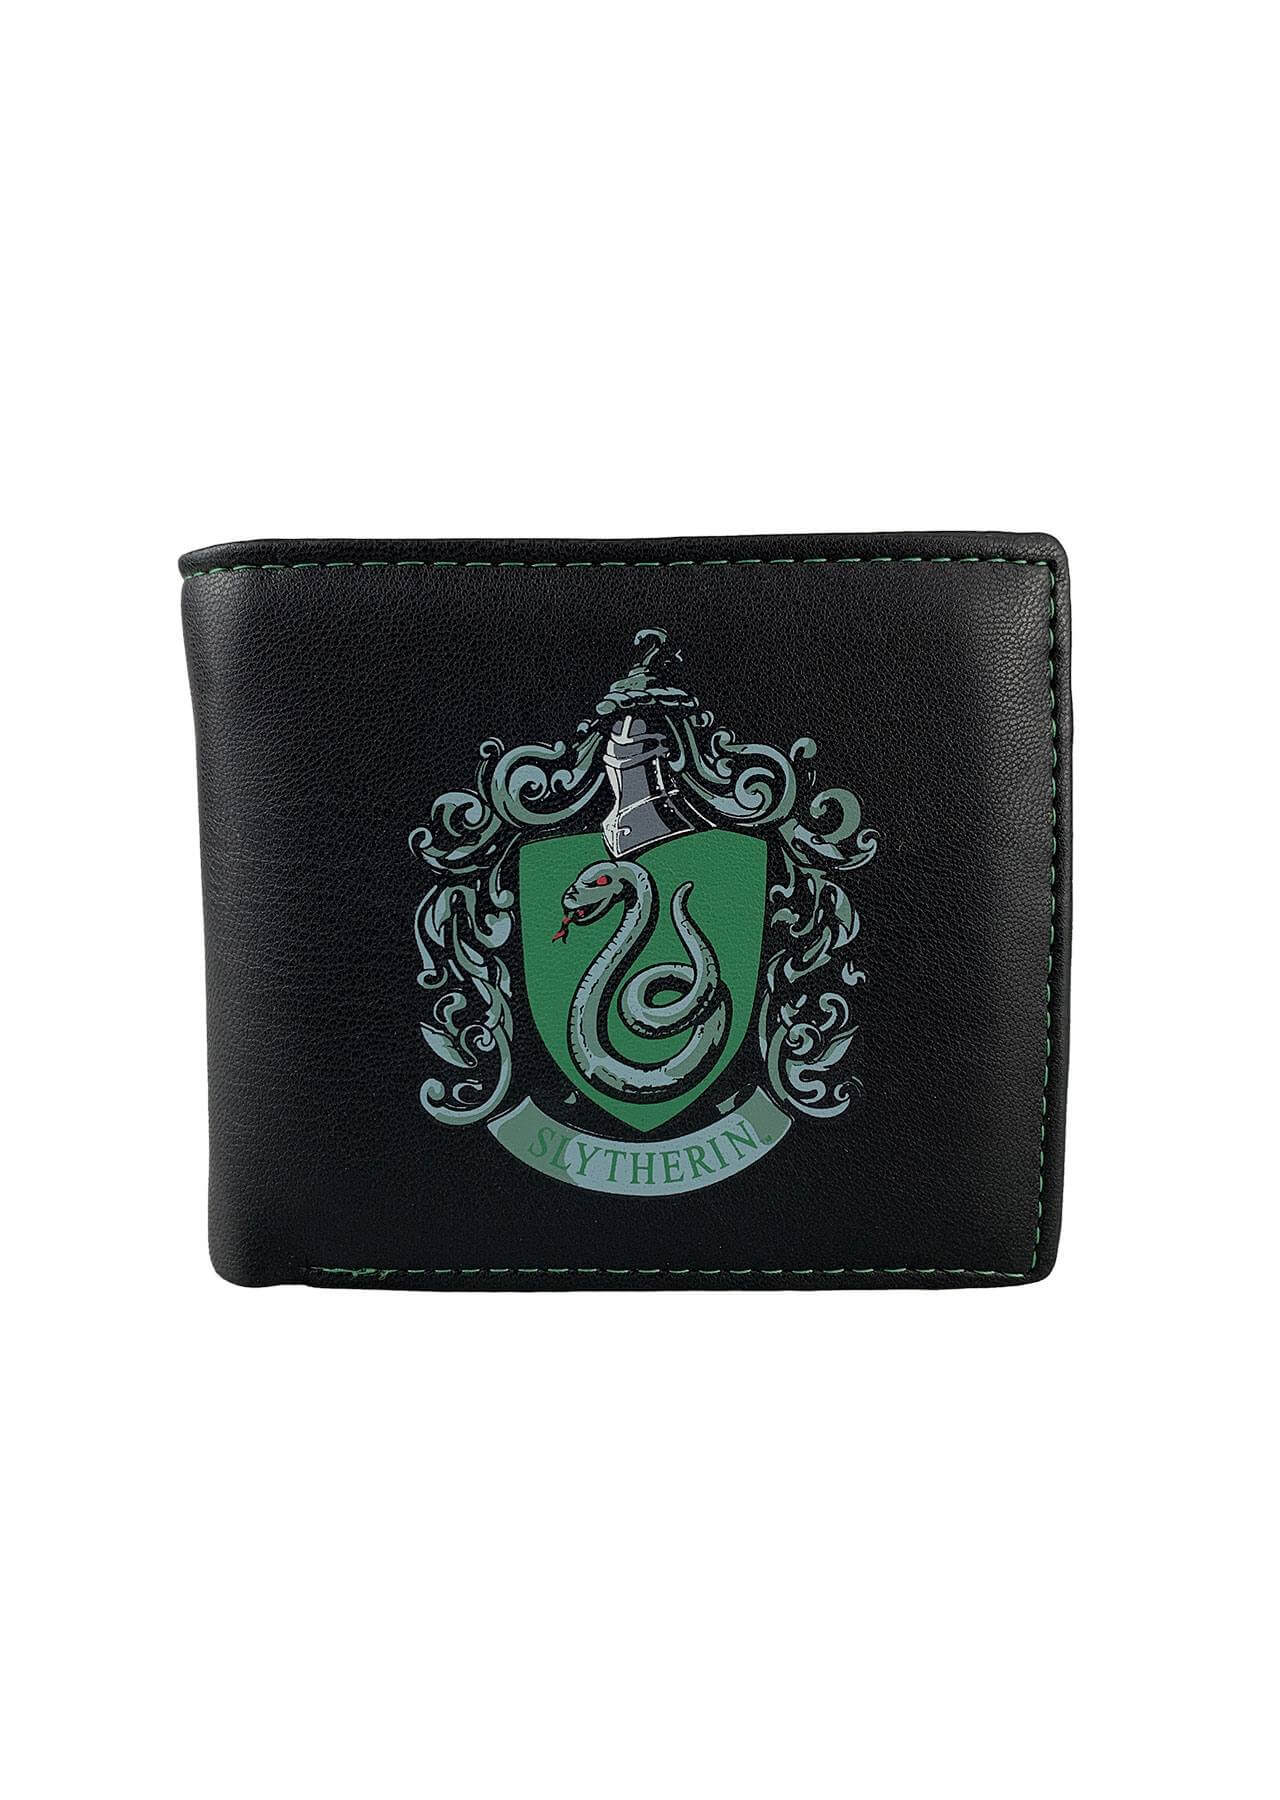 PORTEFEUILLE SERPENTARD VERT - HARRY POTTER